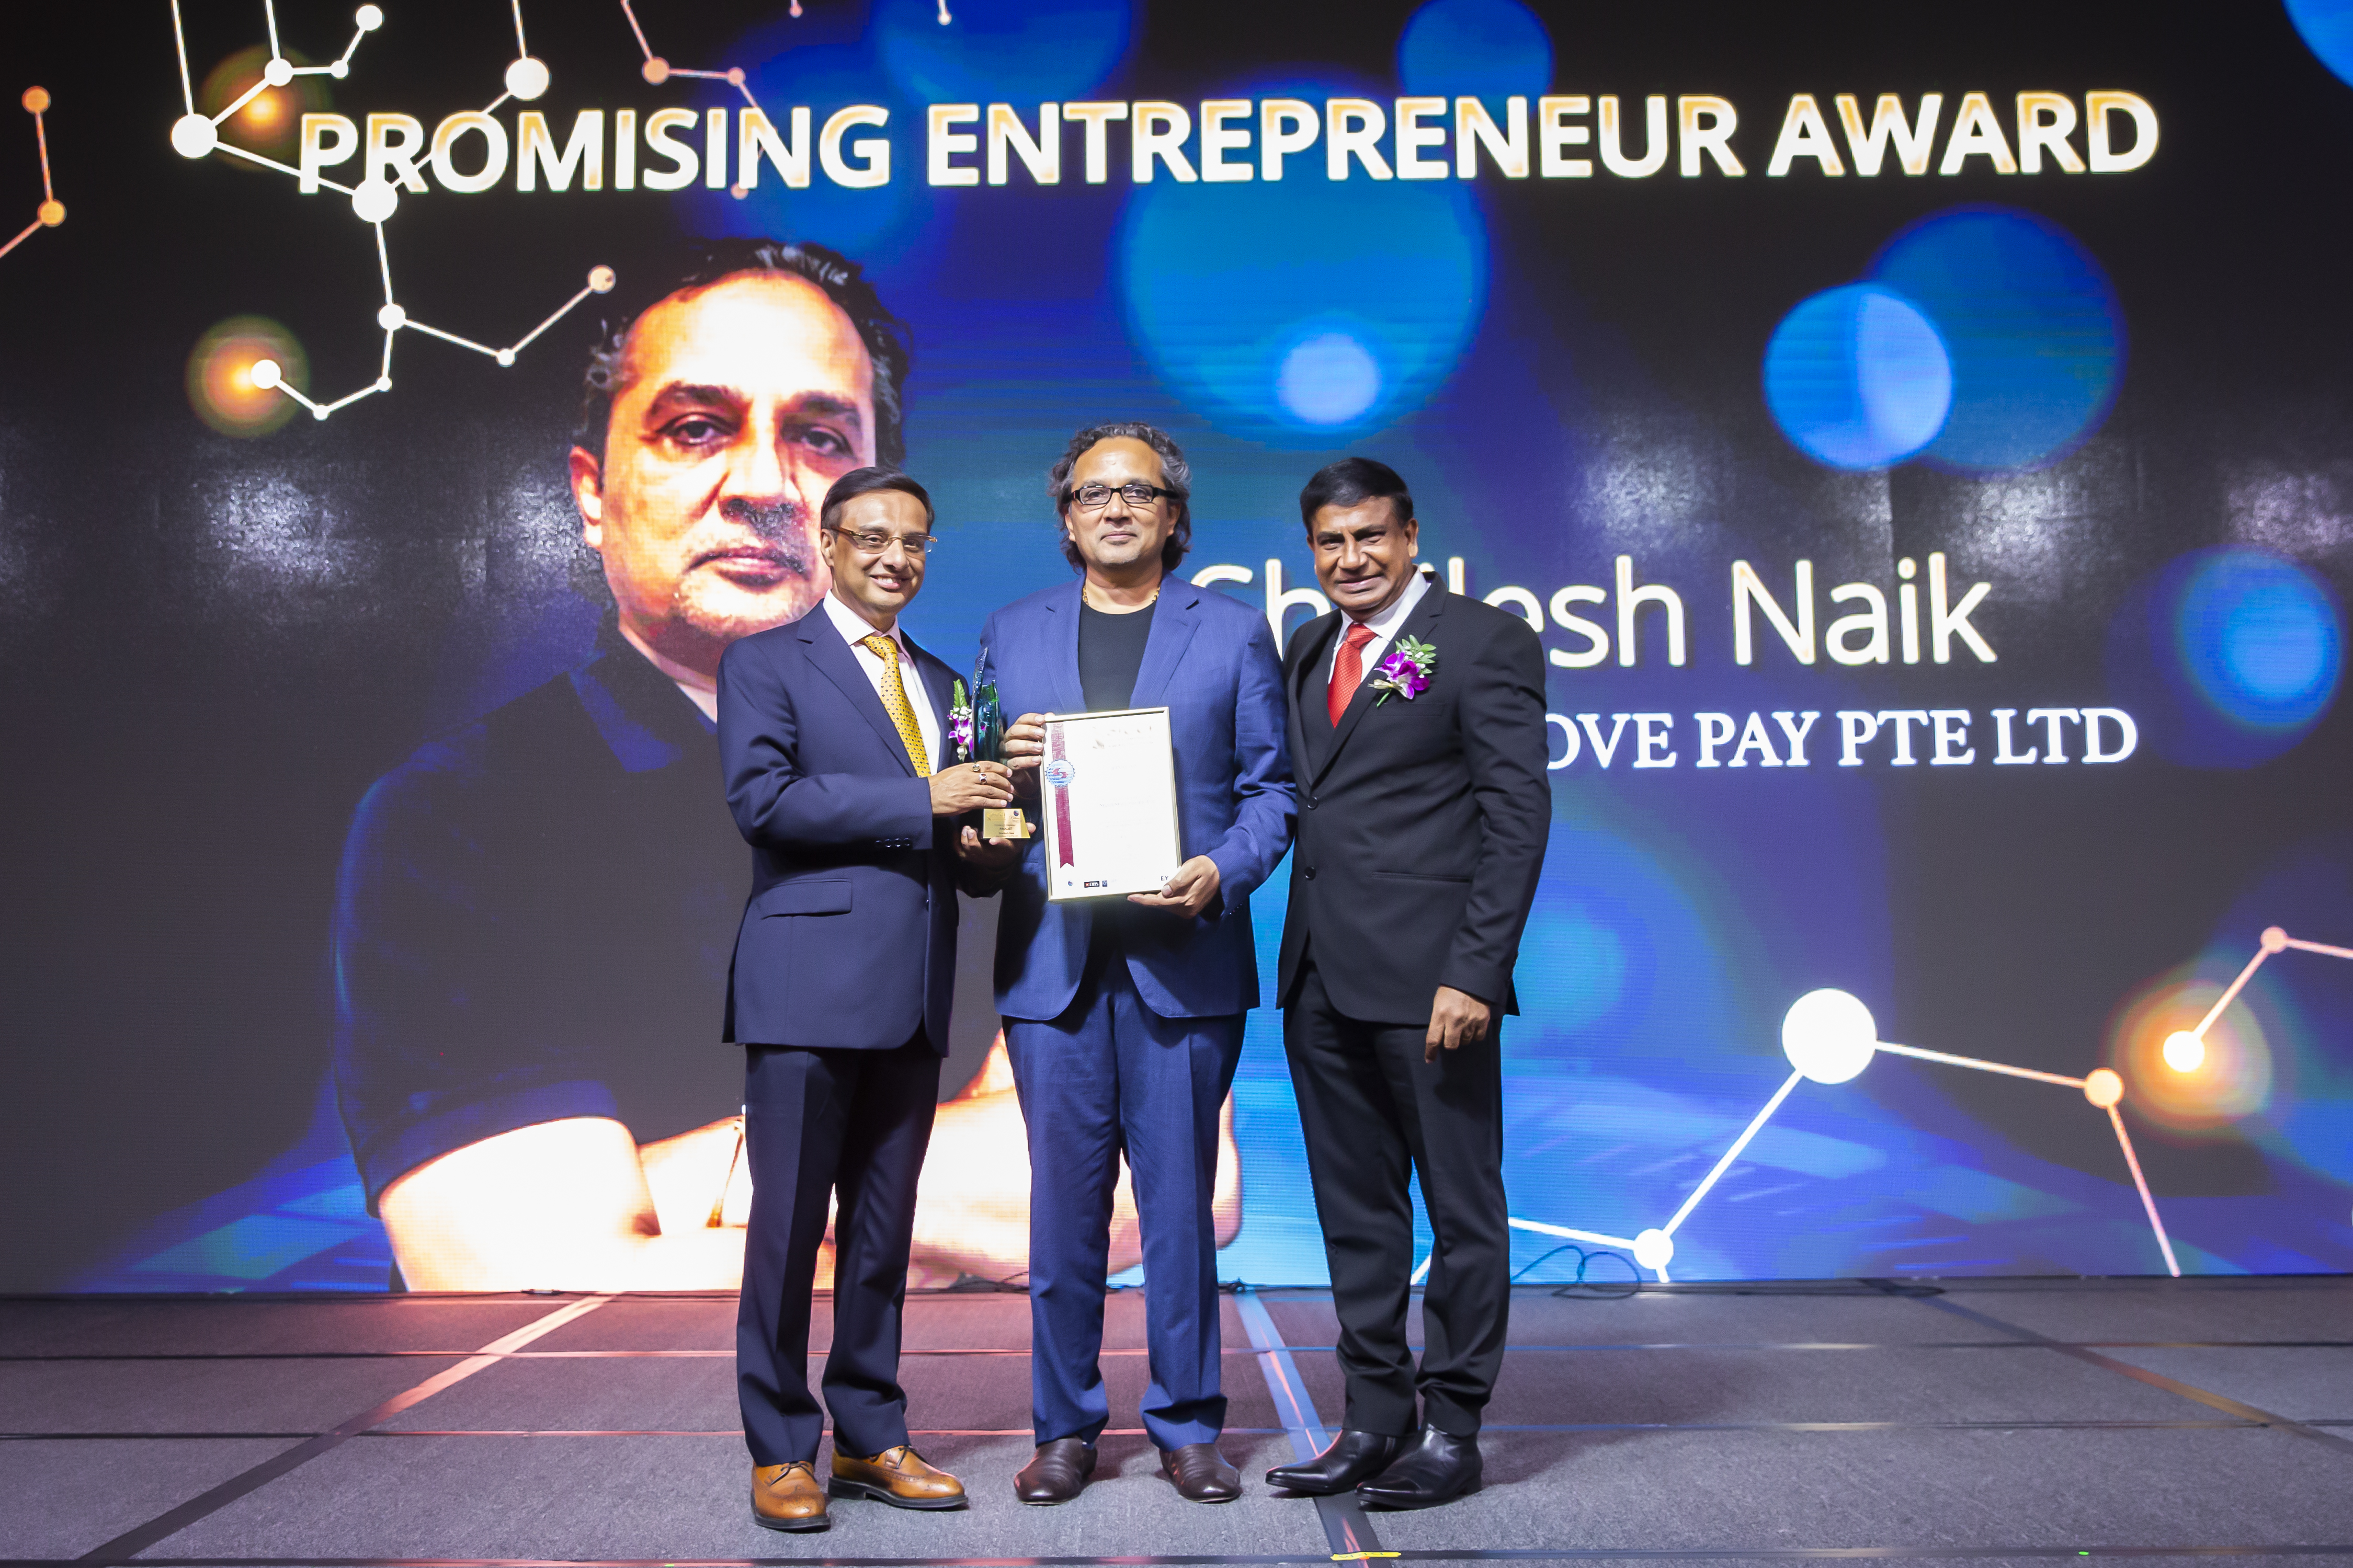 Shailesh Naik , Founder and CEO of Matchmove Pay Private Limited  wins the Promising Entrepreneur Award at the 2019 SICCI Awards ceremony. Photo Courtesy: SICCI